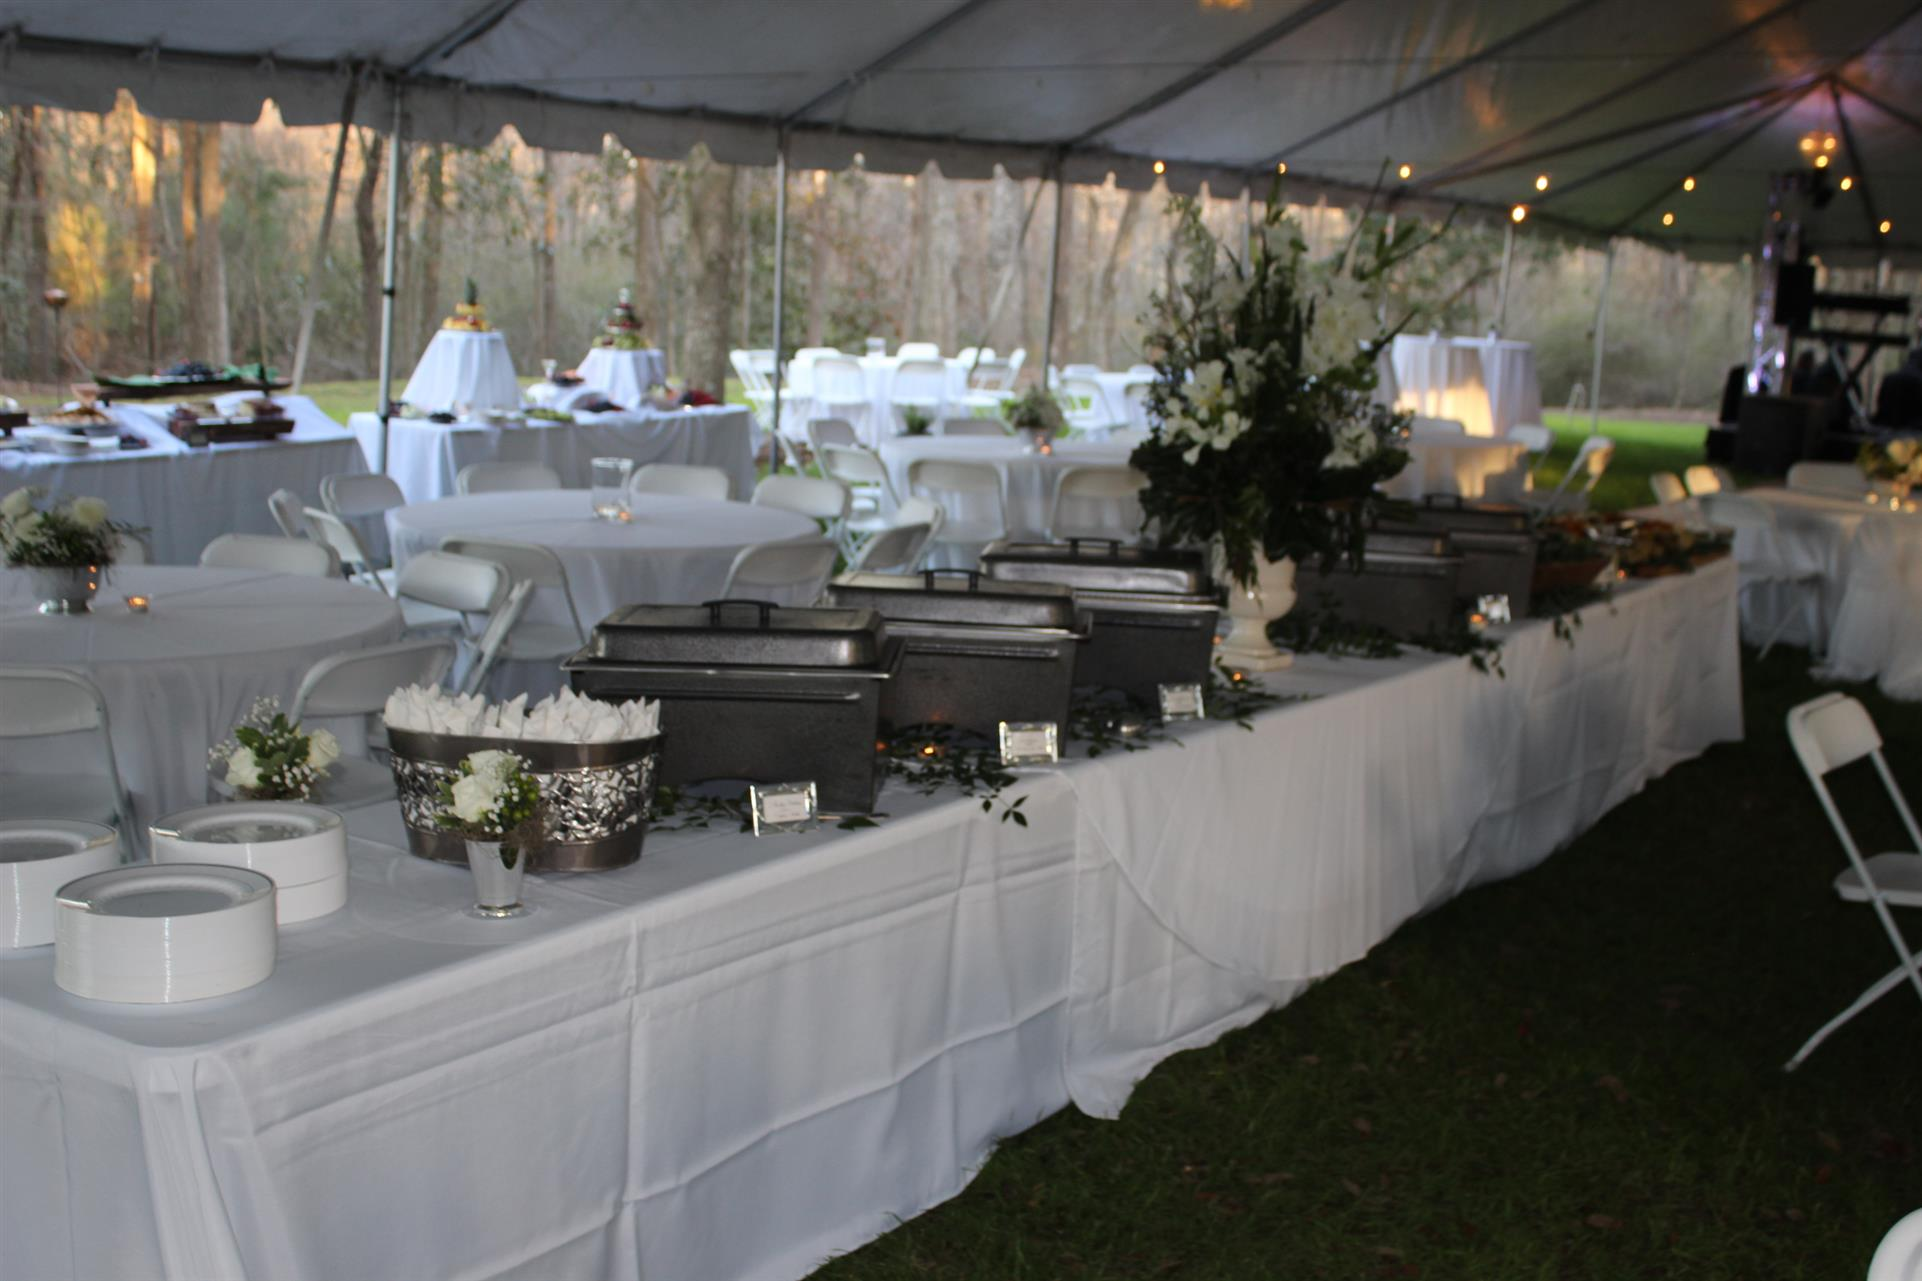 catering buffet station setup with metal trays and utensils